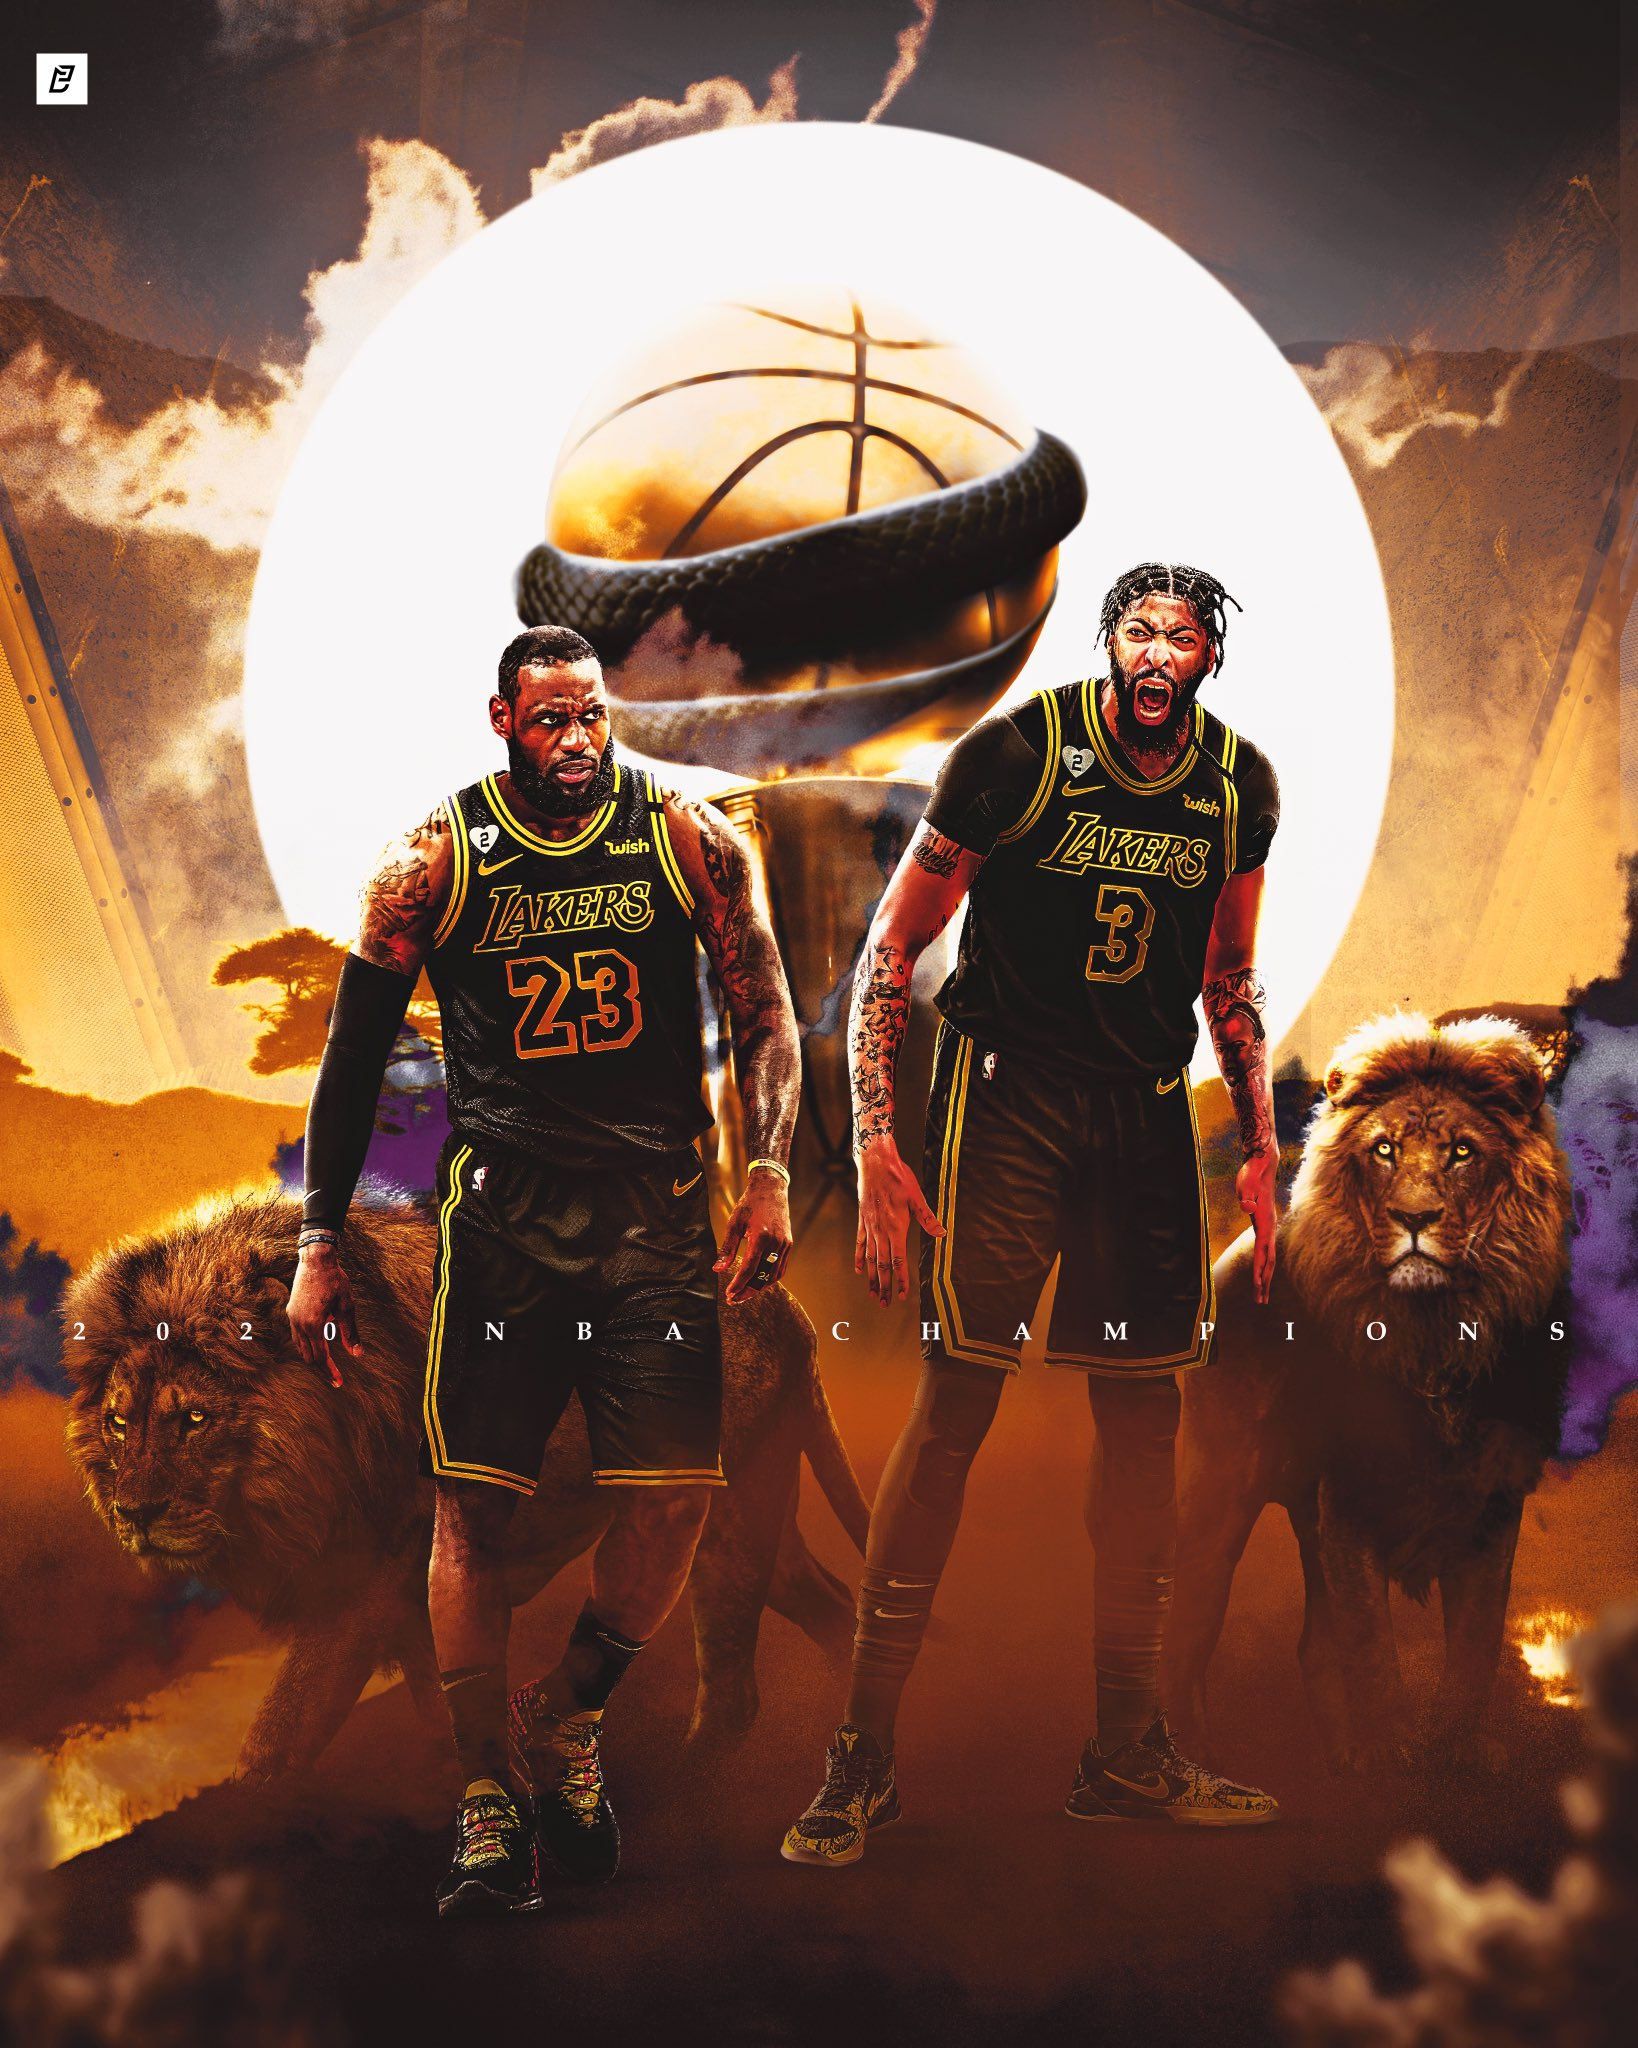 Los Angeles Lakers NBA Champions 2020 wallpapers